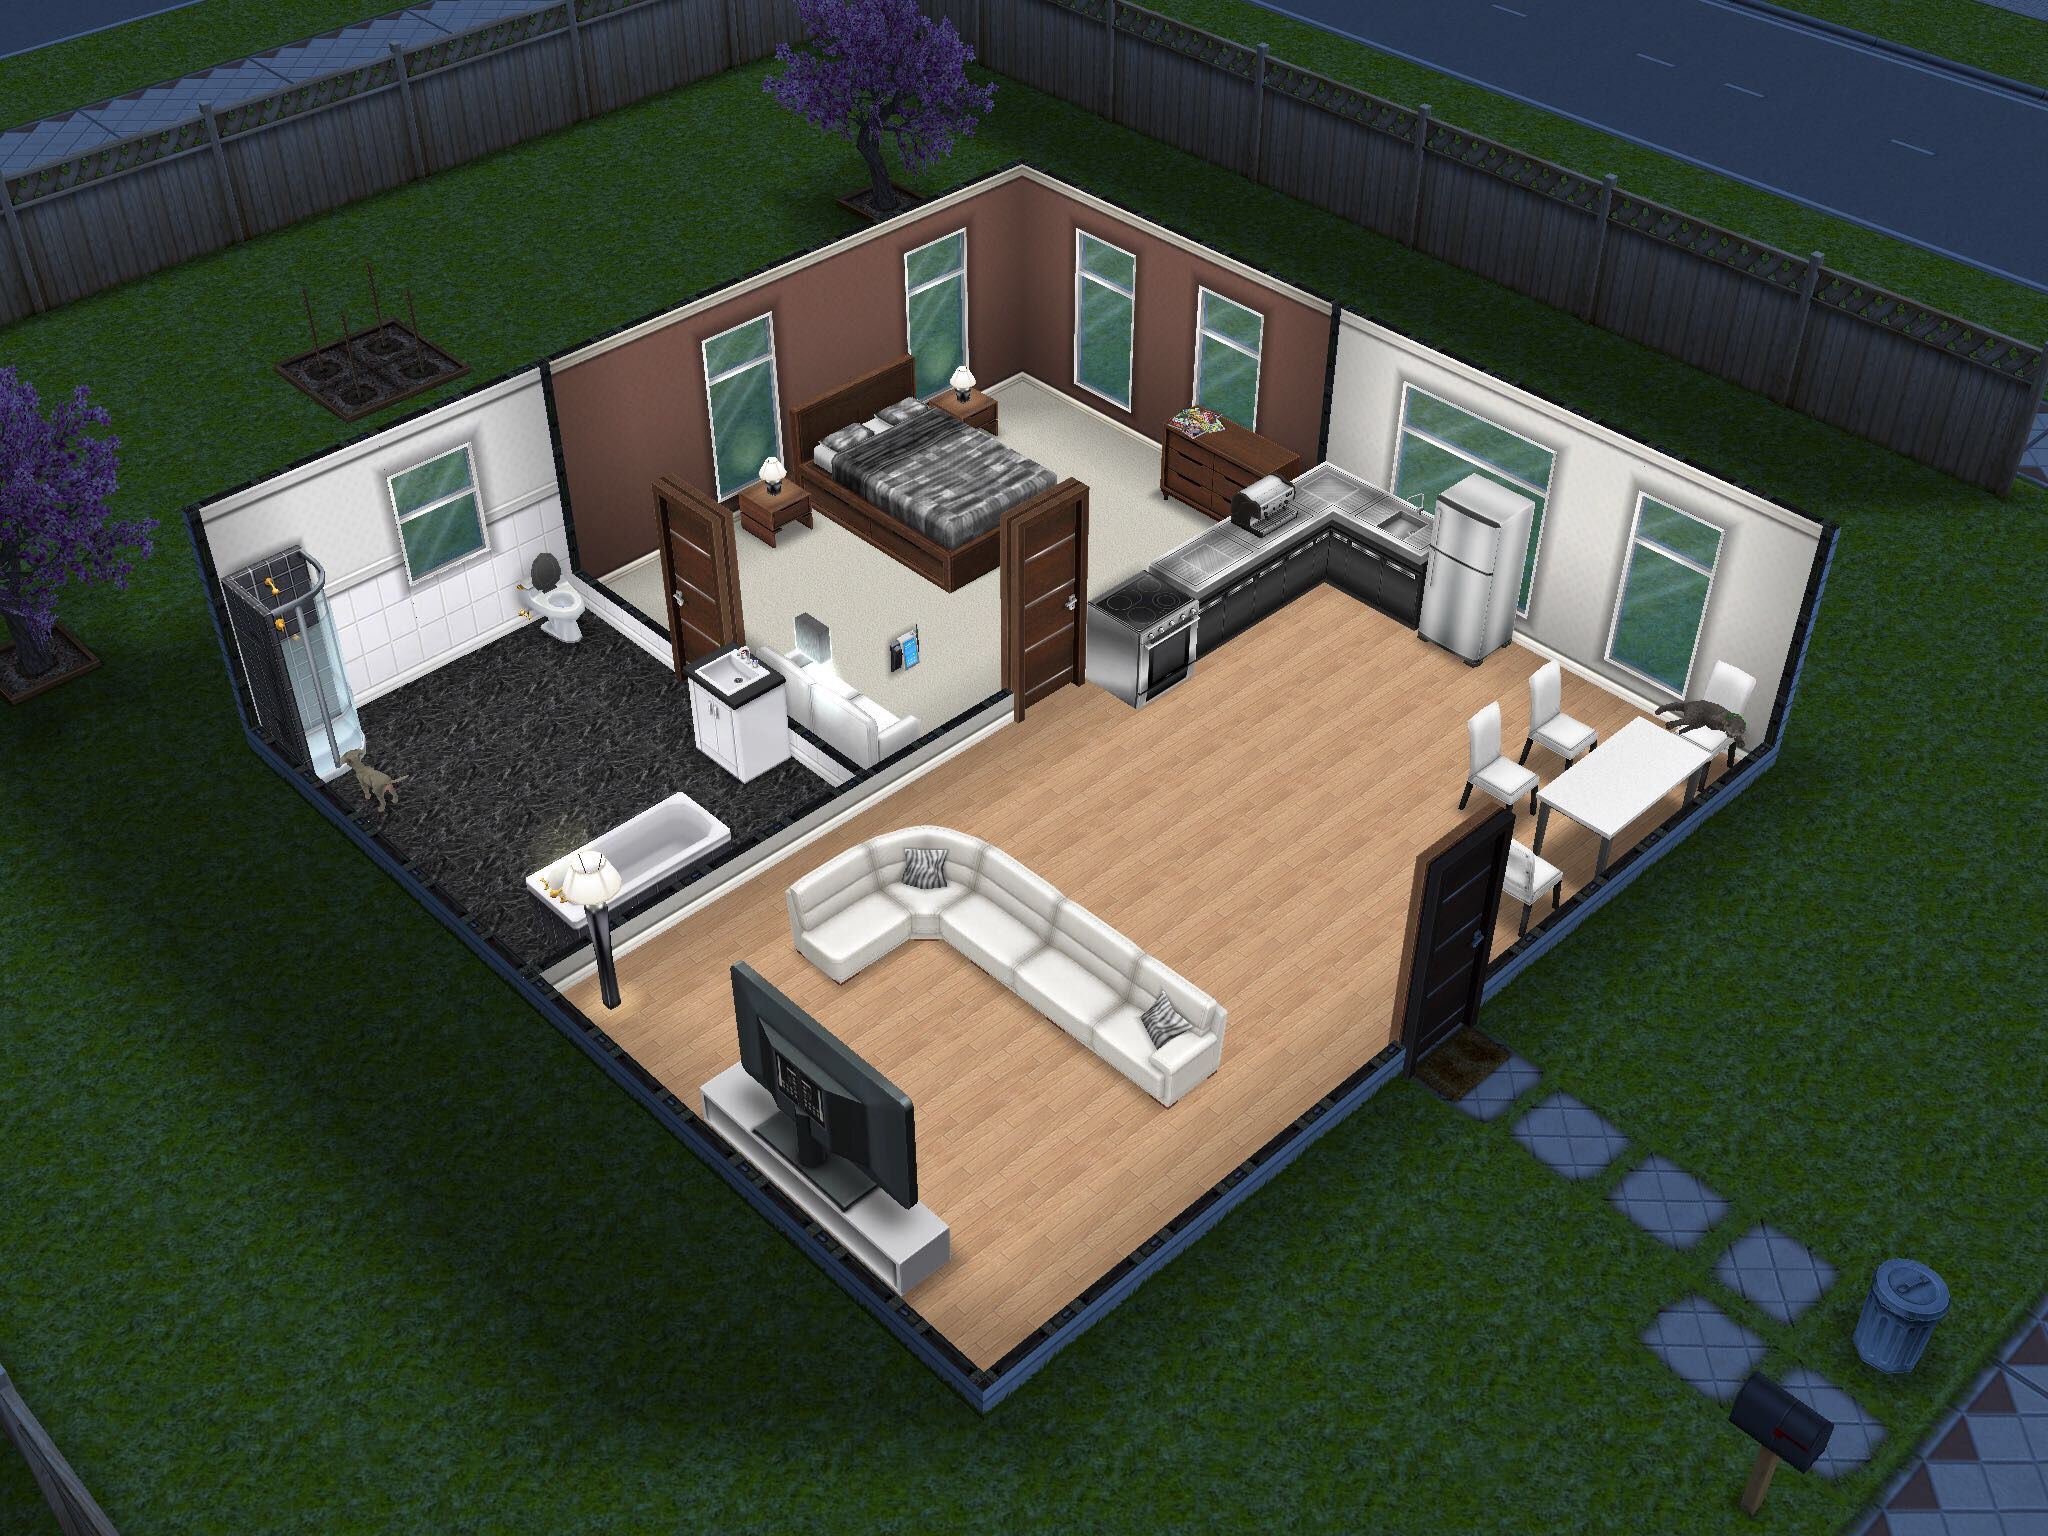 Verdieping Sims Freeplay Small And Simple Sims Freeplay House Sims Casa Sims Planos De